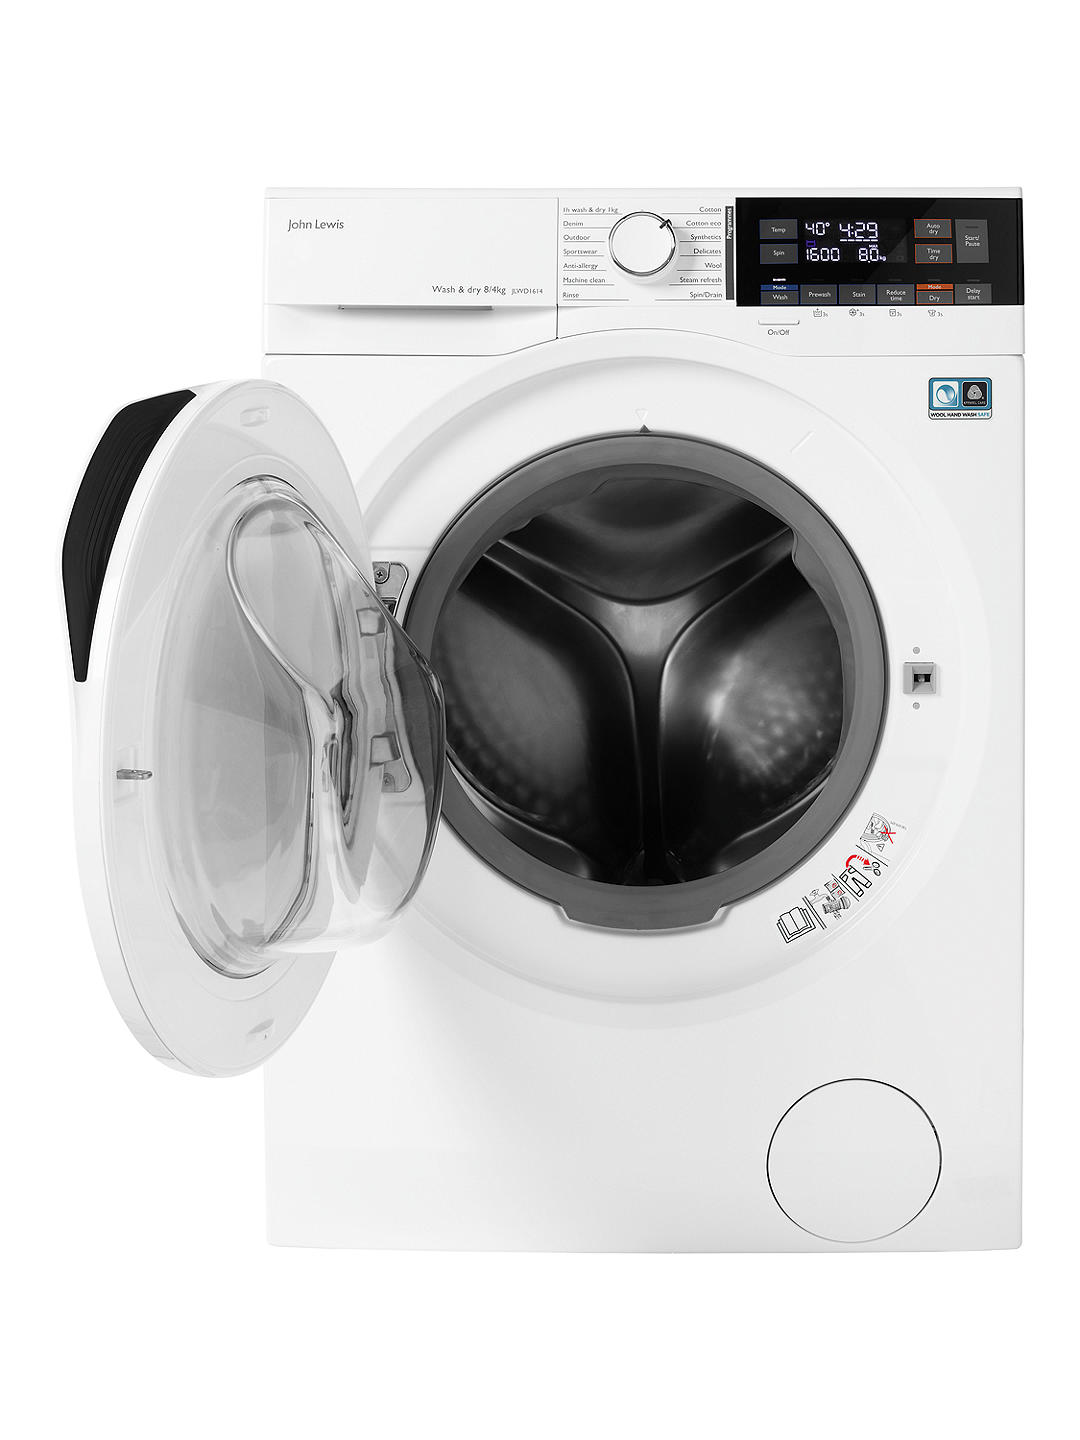 Buy John Lewis & Partners JLWD1614 Freestanding Washer Dryer, 8kg Wash/4kg Dry Load, A Energy Rating, 1600rpm Spin, White Online at johnlewis.com